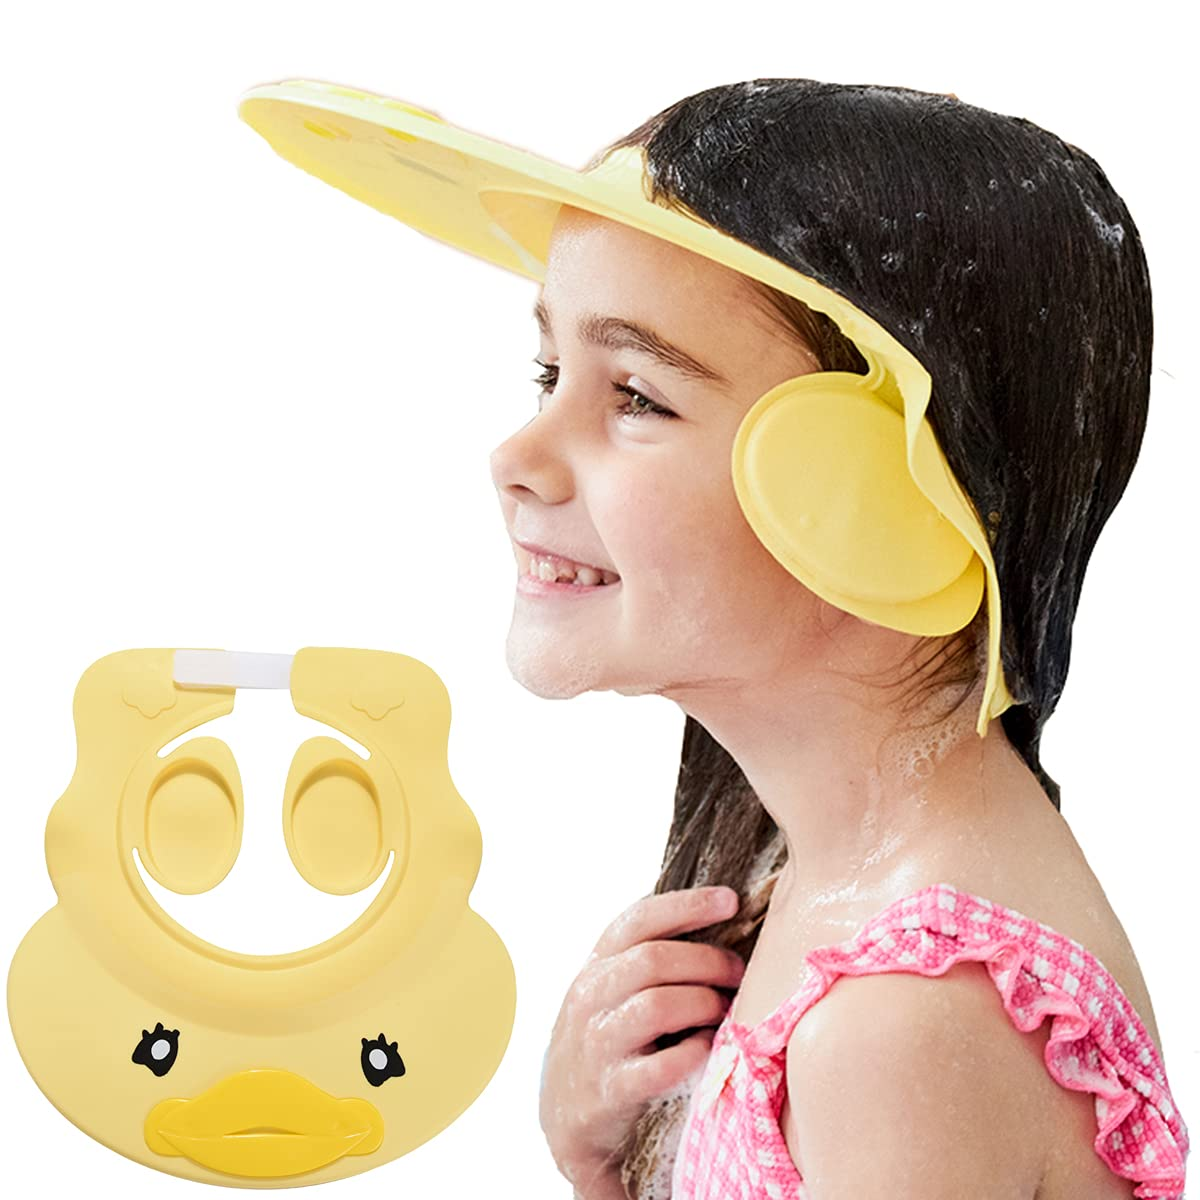 Baby Shower Cap Washing Hair Visor Shield Kids Shampoo Guard hat Toddler Bath Rinser Prevents Water from Pooling in Face for Protector Children Eyes and Ears (Yellow)